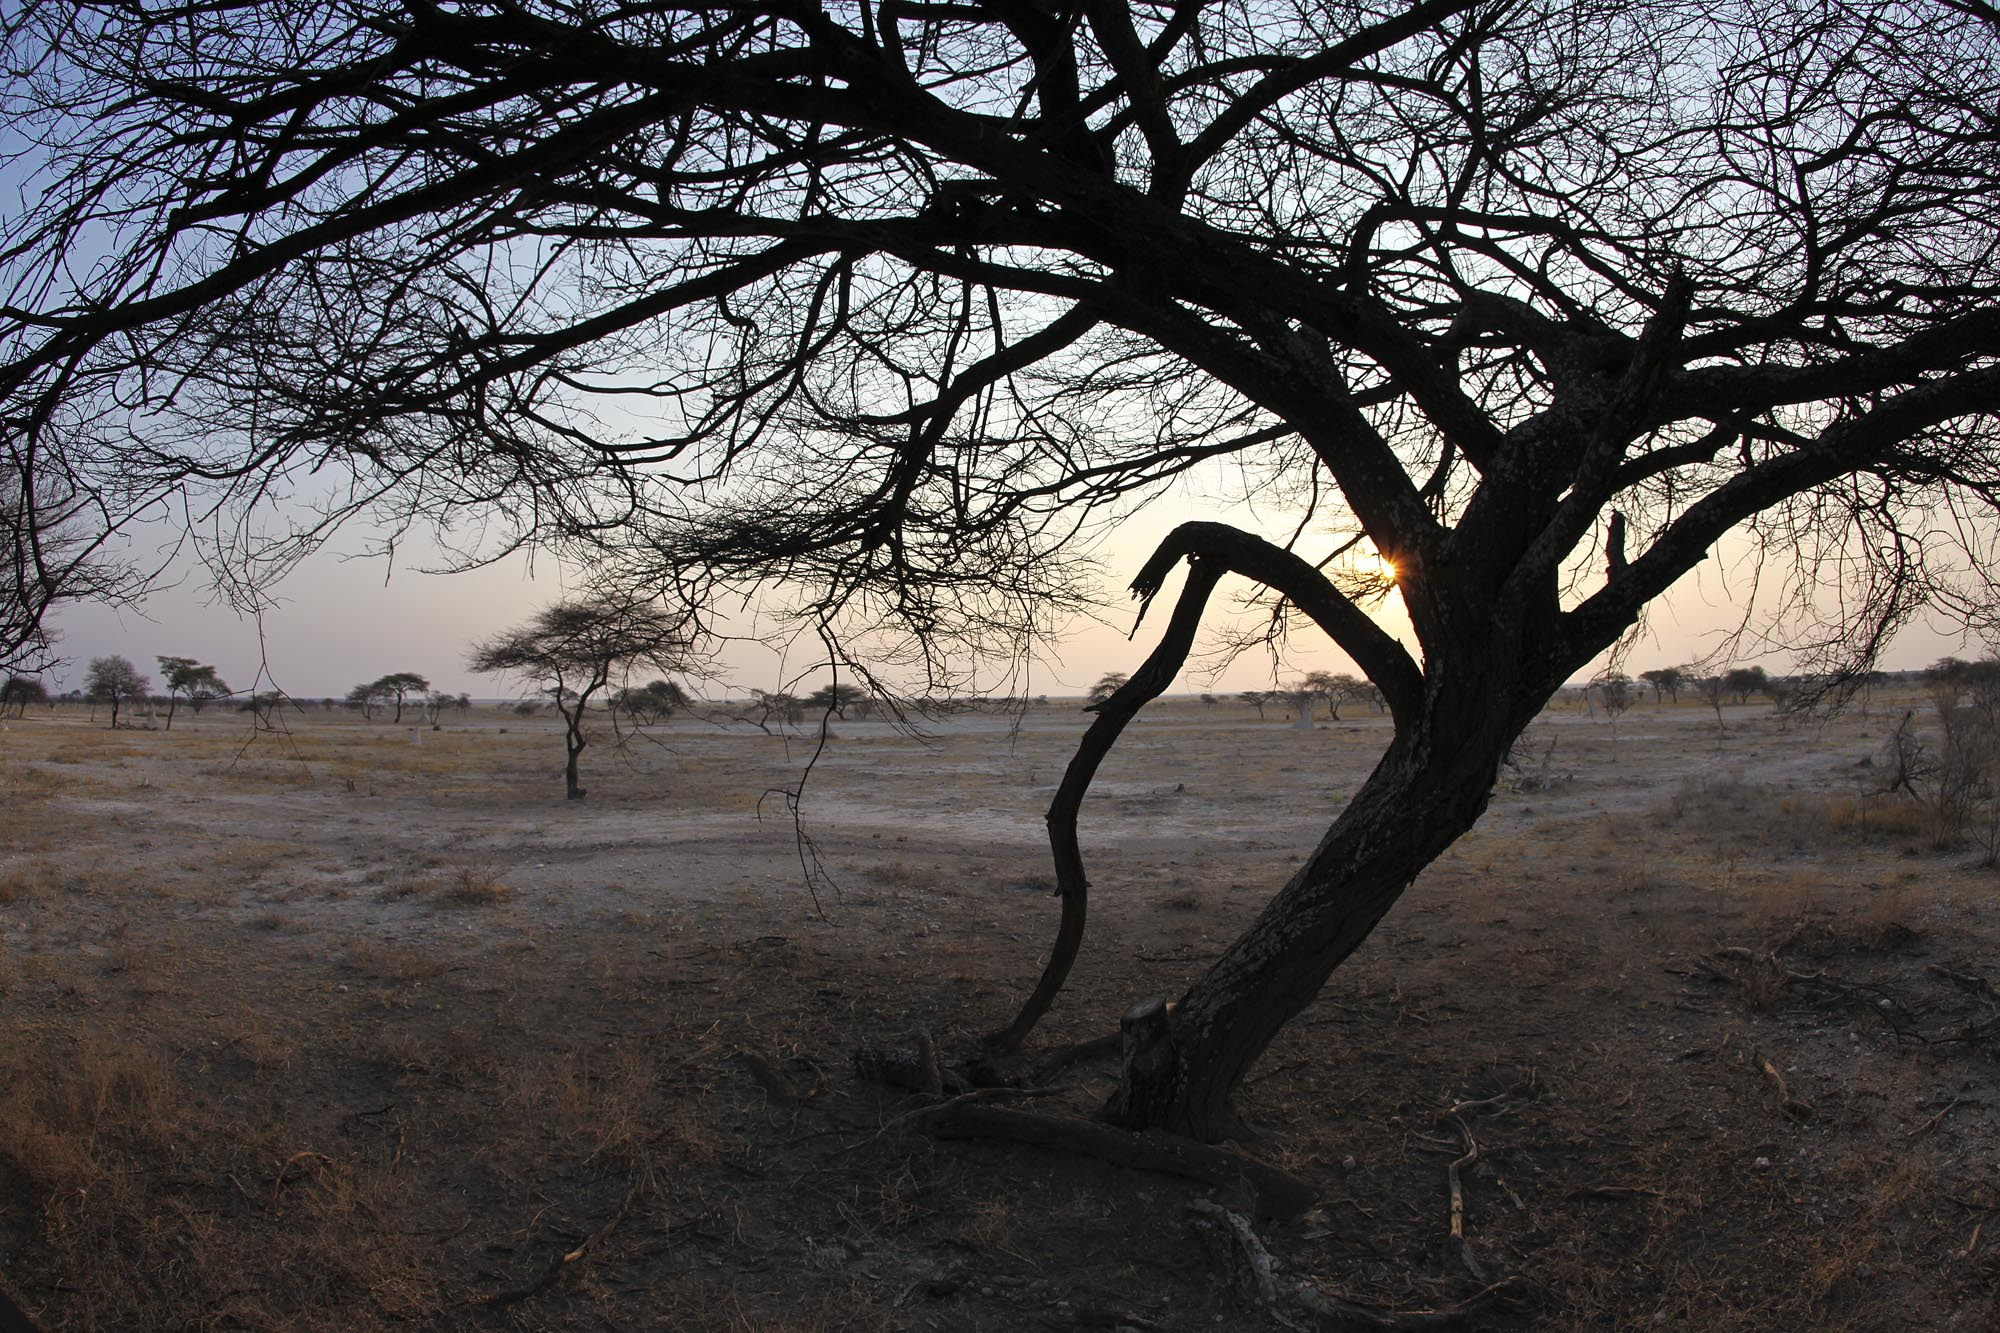 Looking out over Etosha from the deck